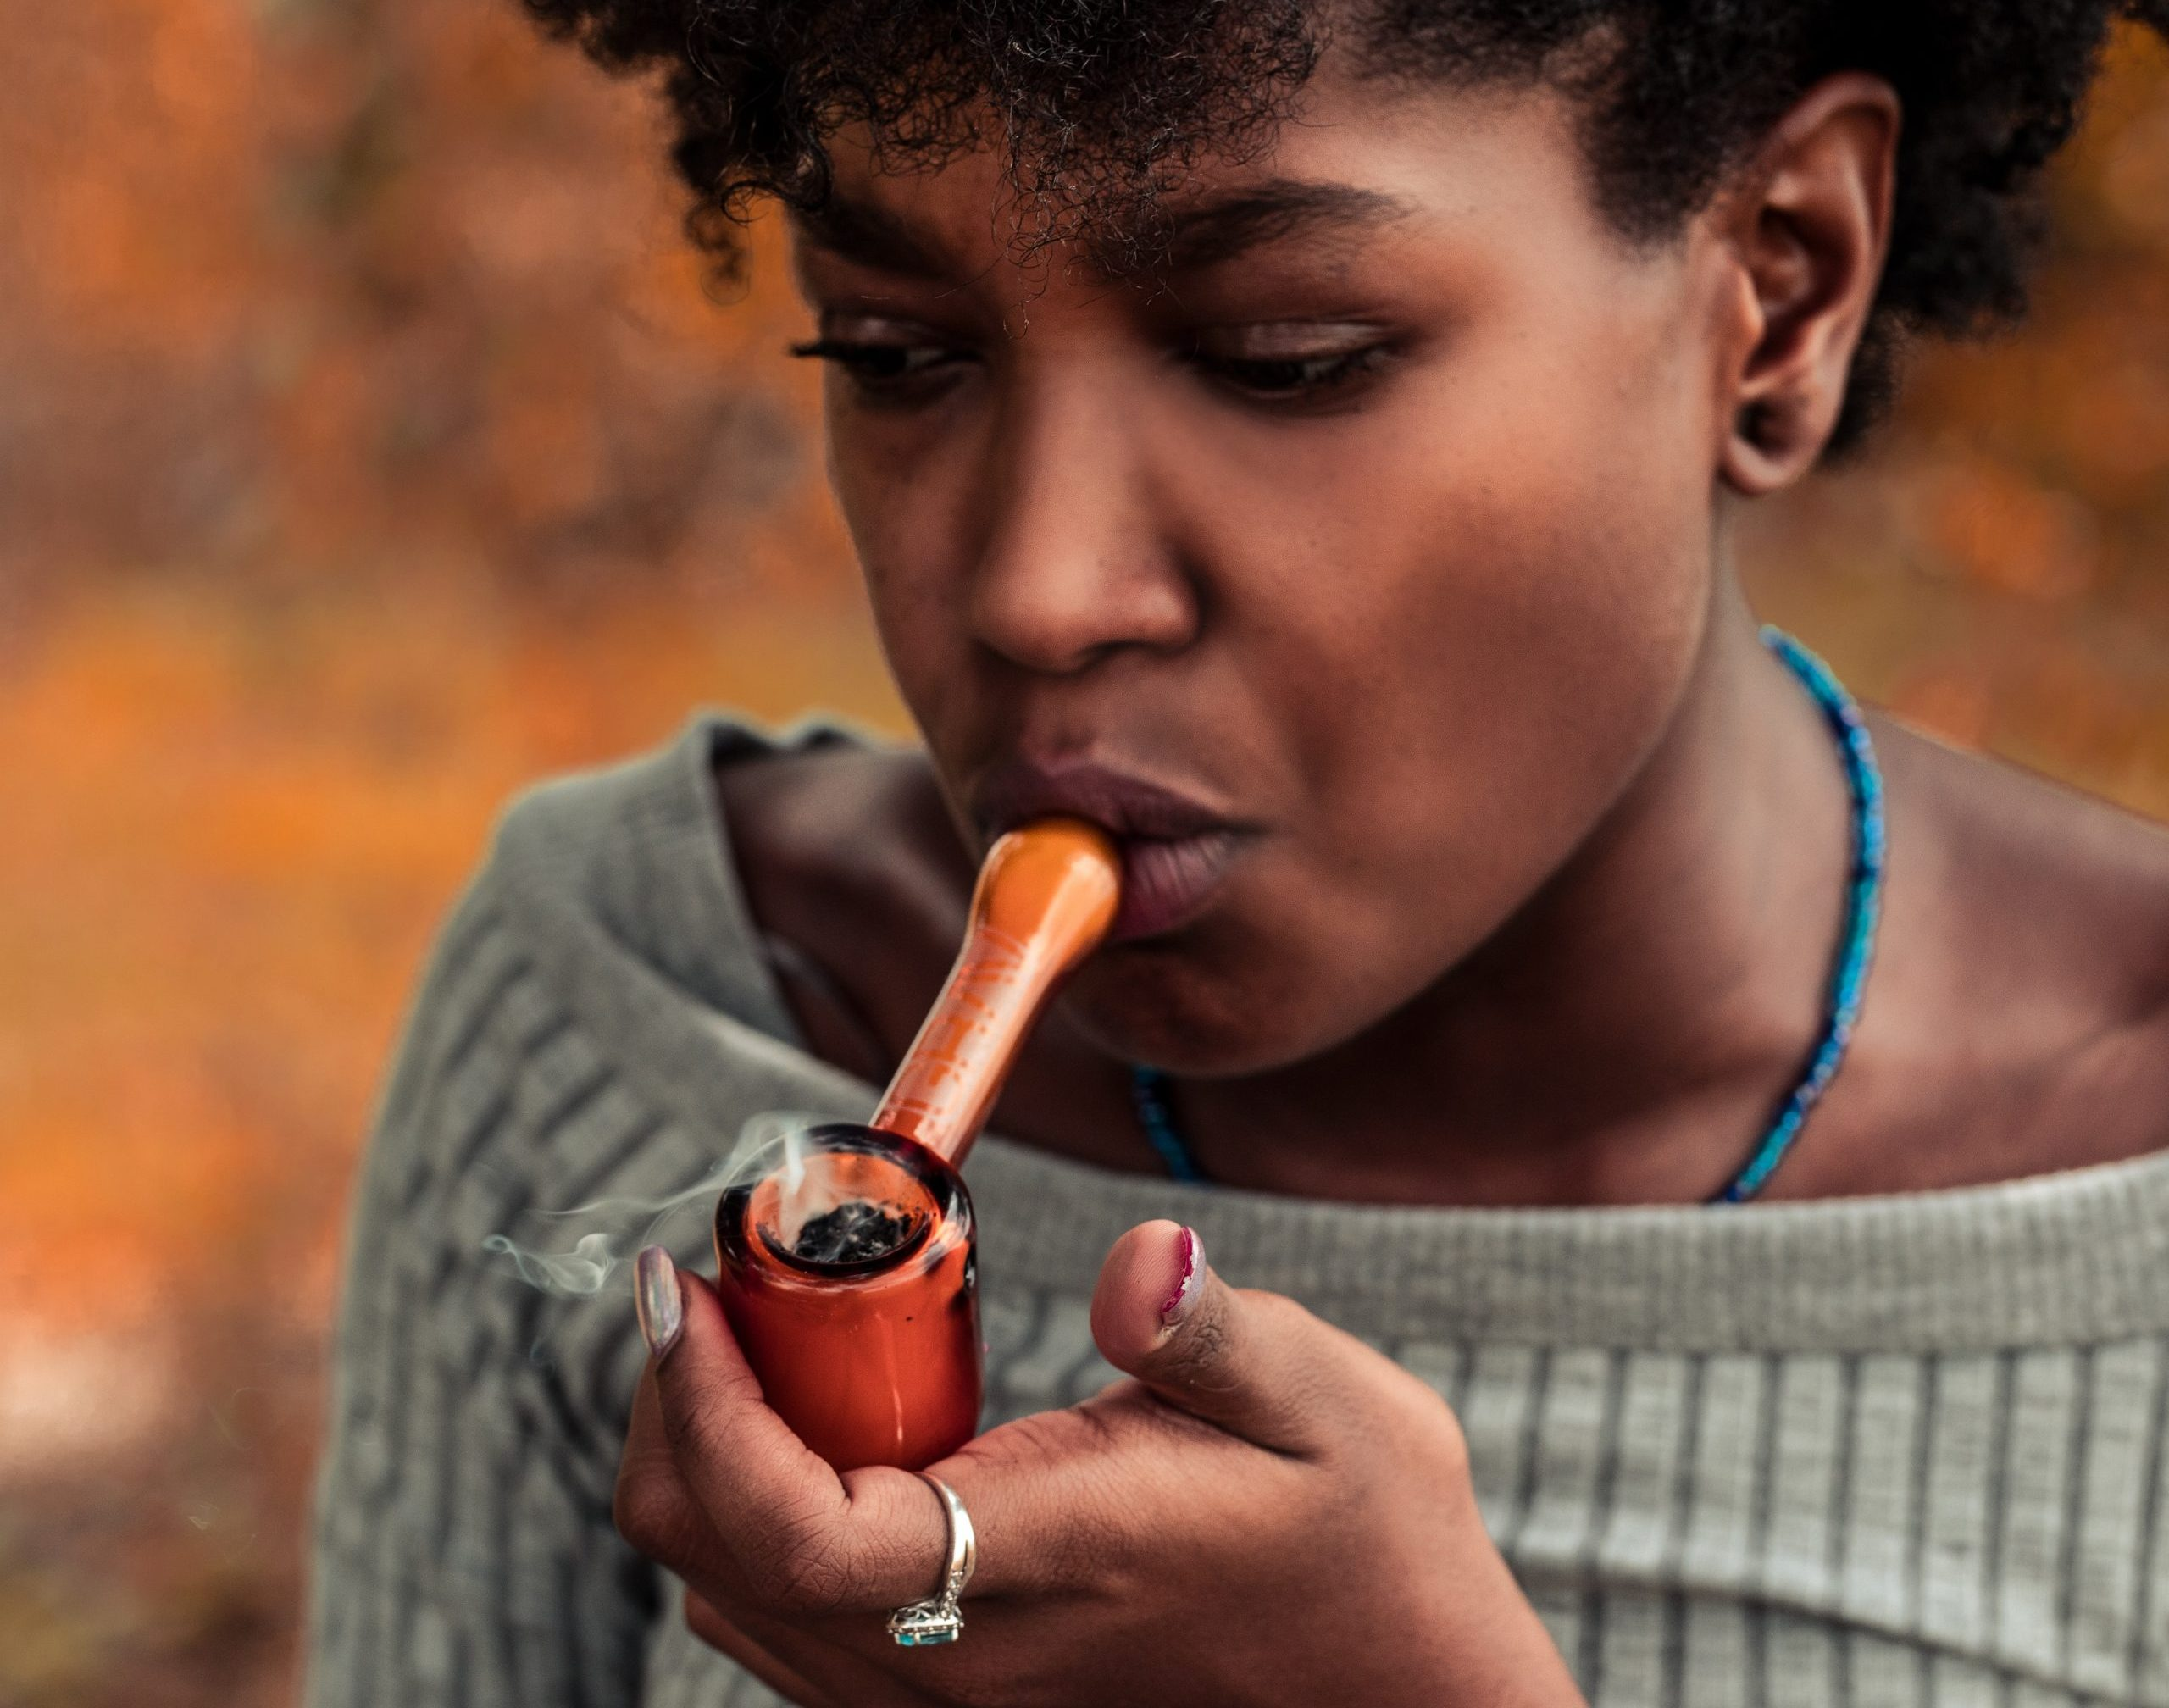 women react differently to cannabis